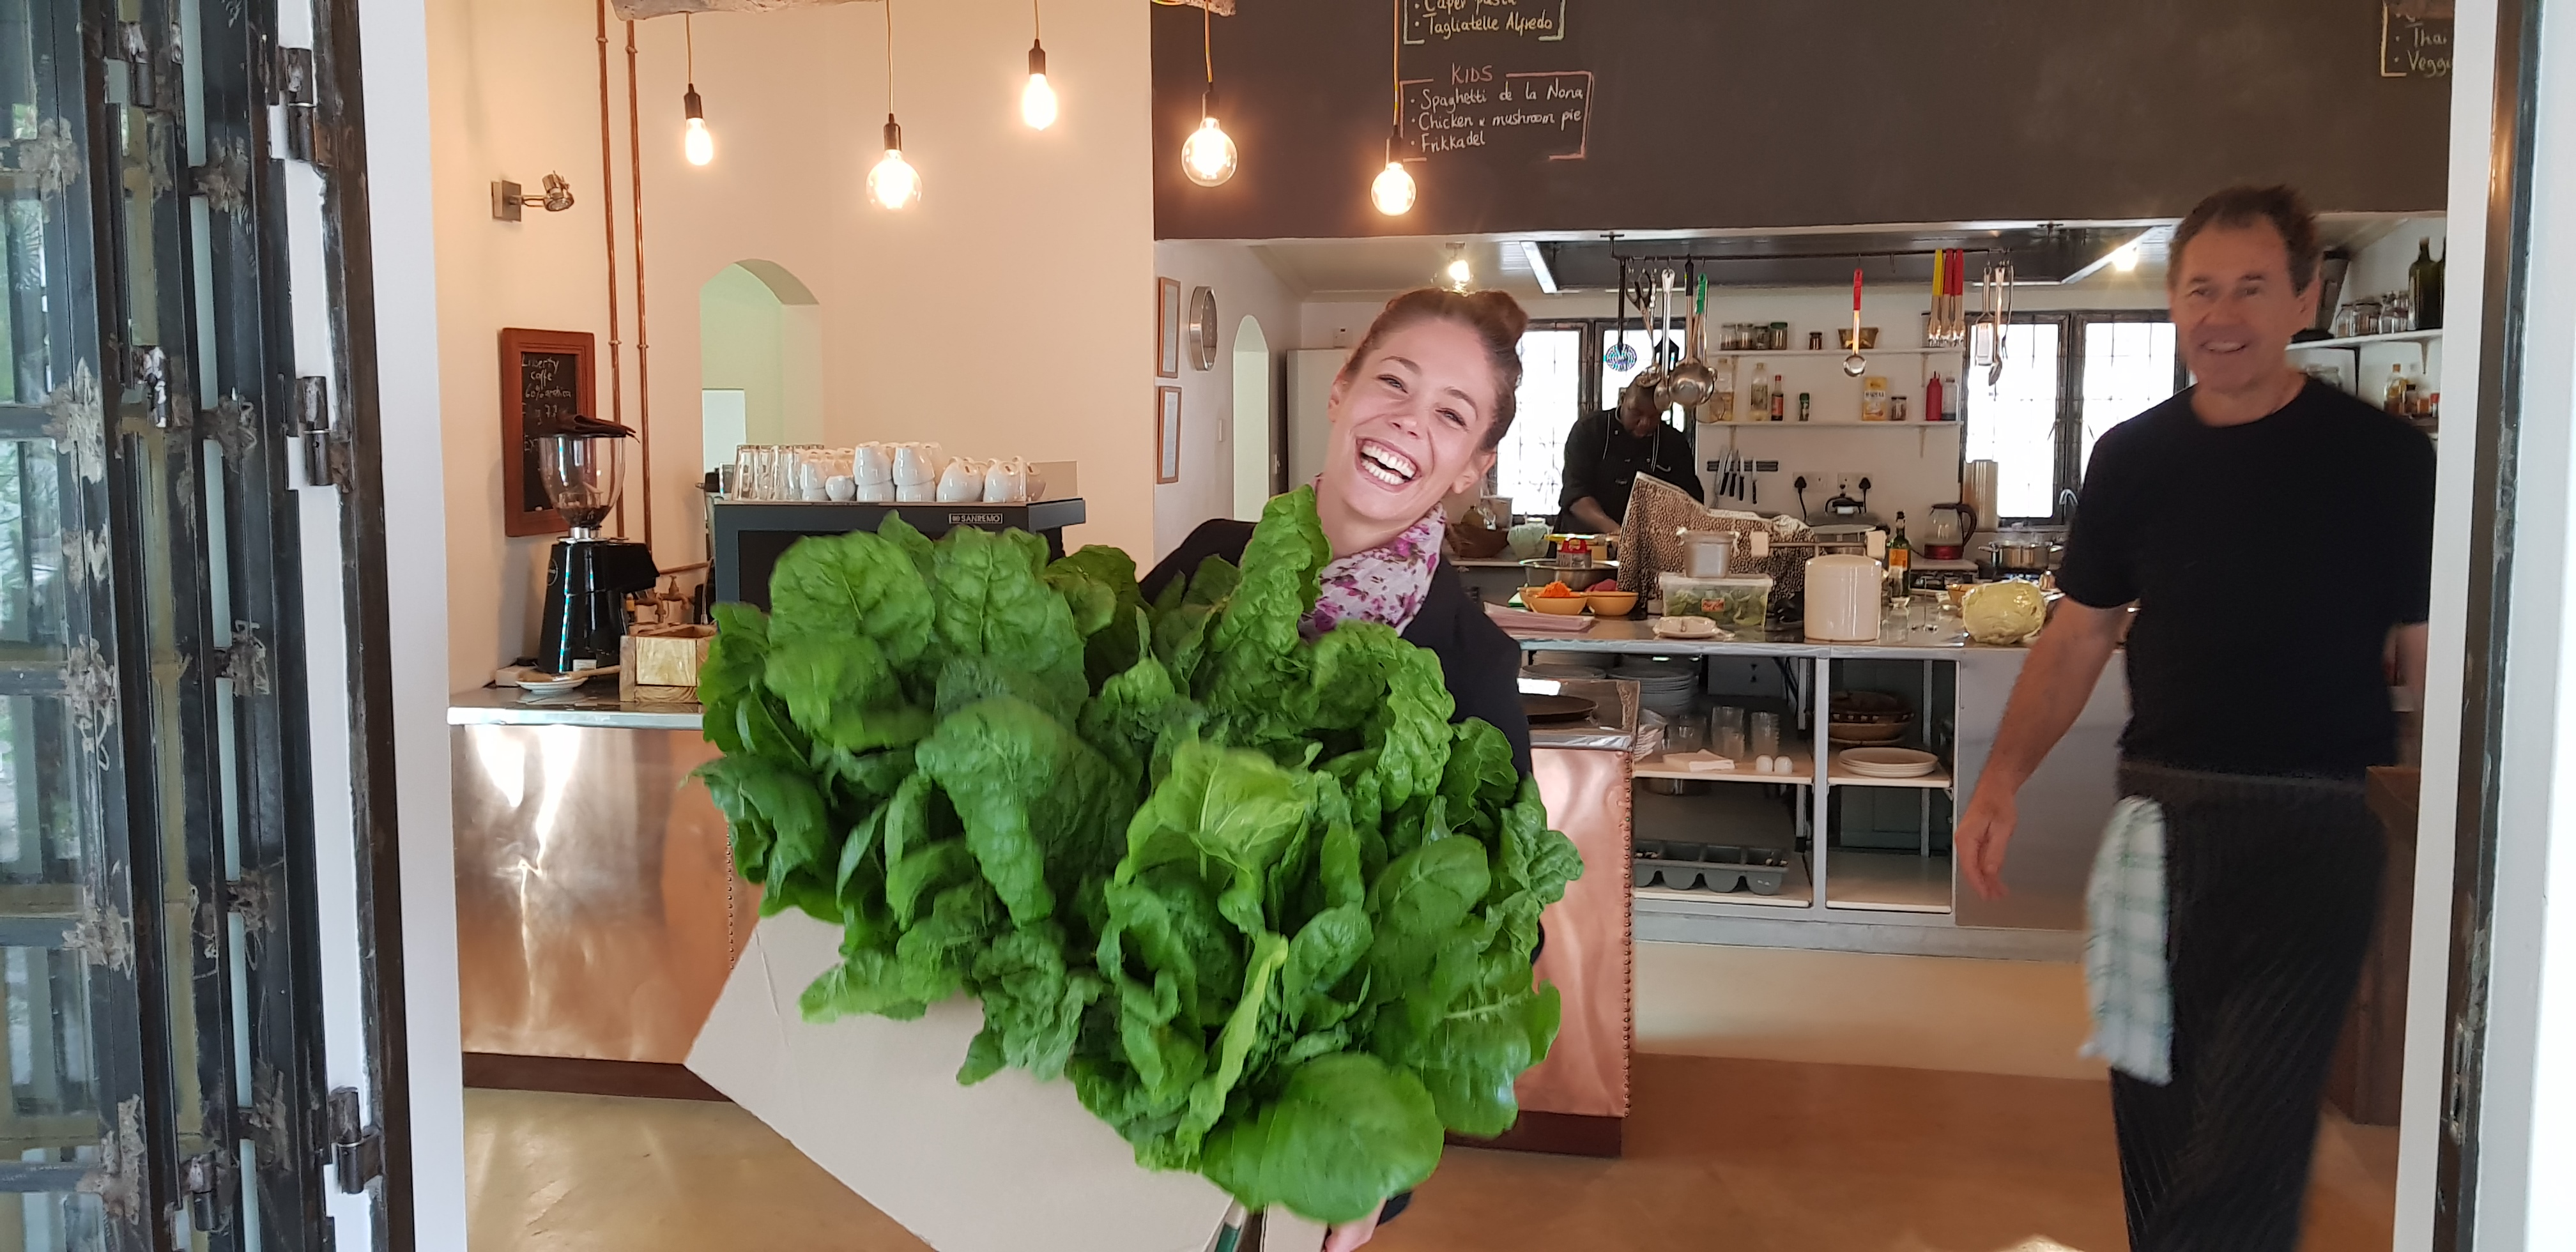 MARC'S EATERY SPINACH DELIVERY